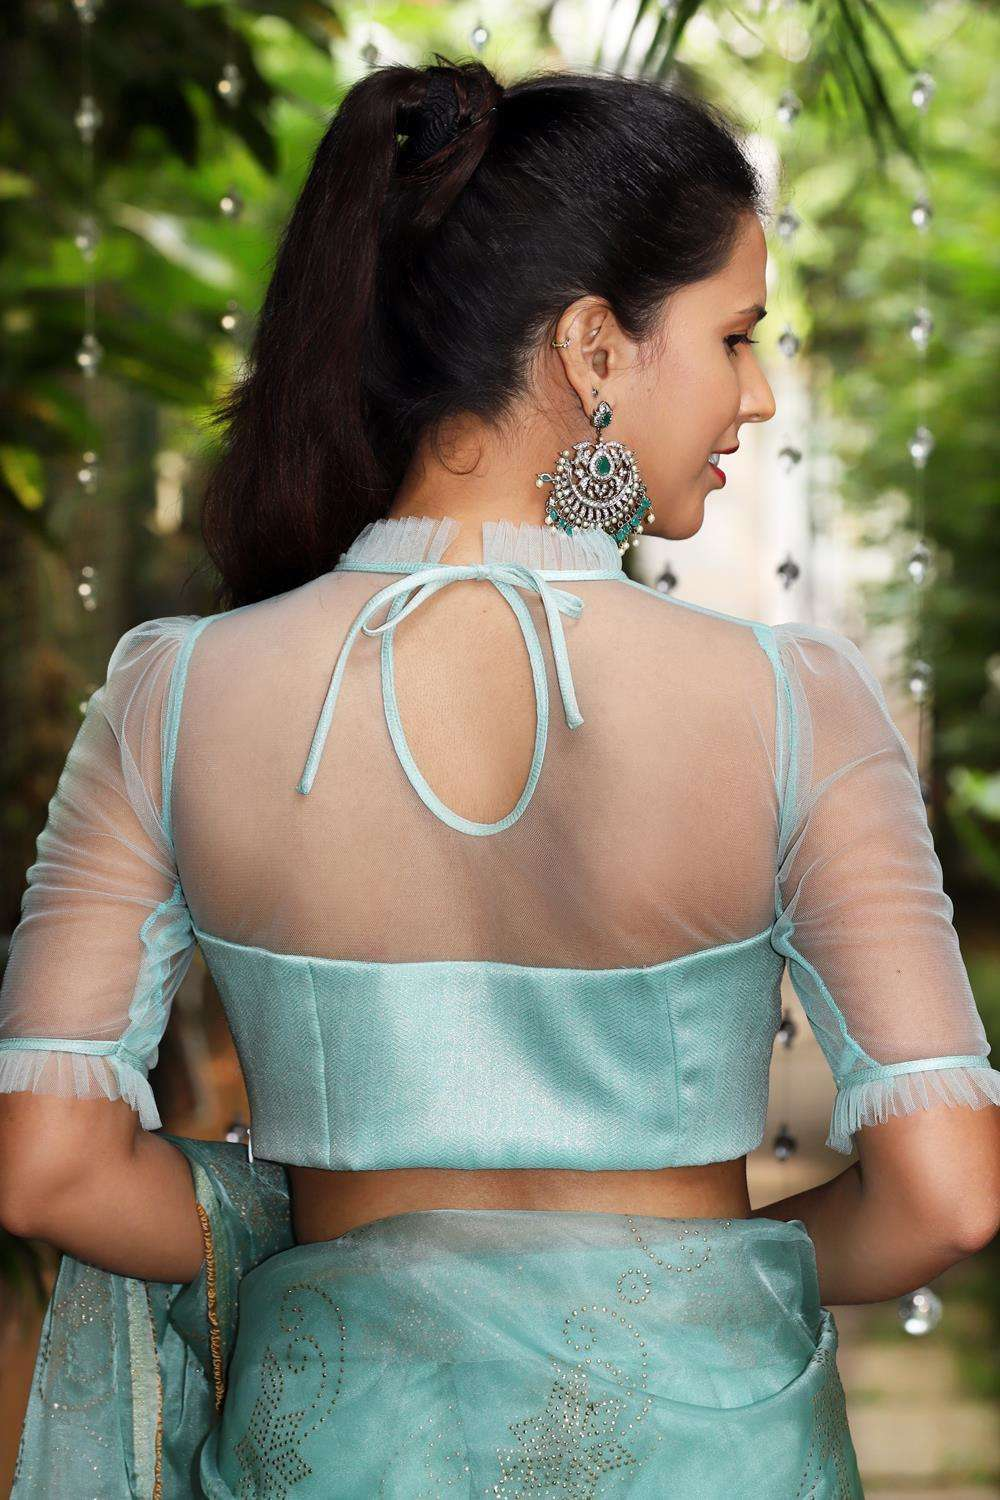 Sea green shimmer georgette and net sheer yoke blouse with frill detailing - House of Blouse